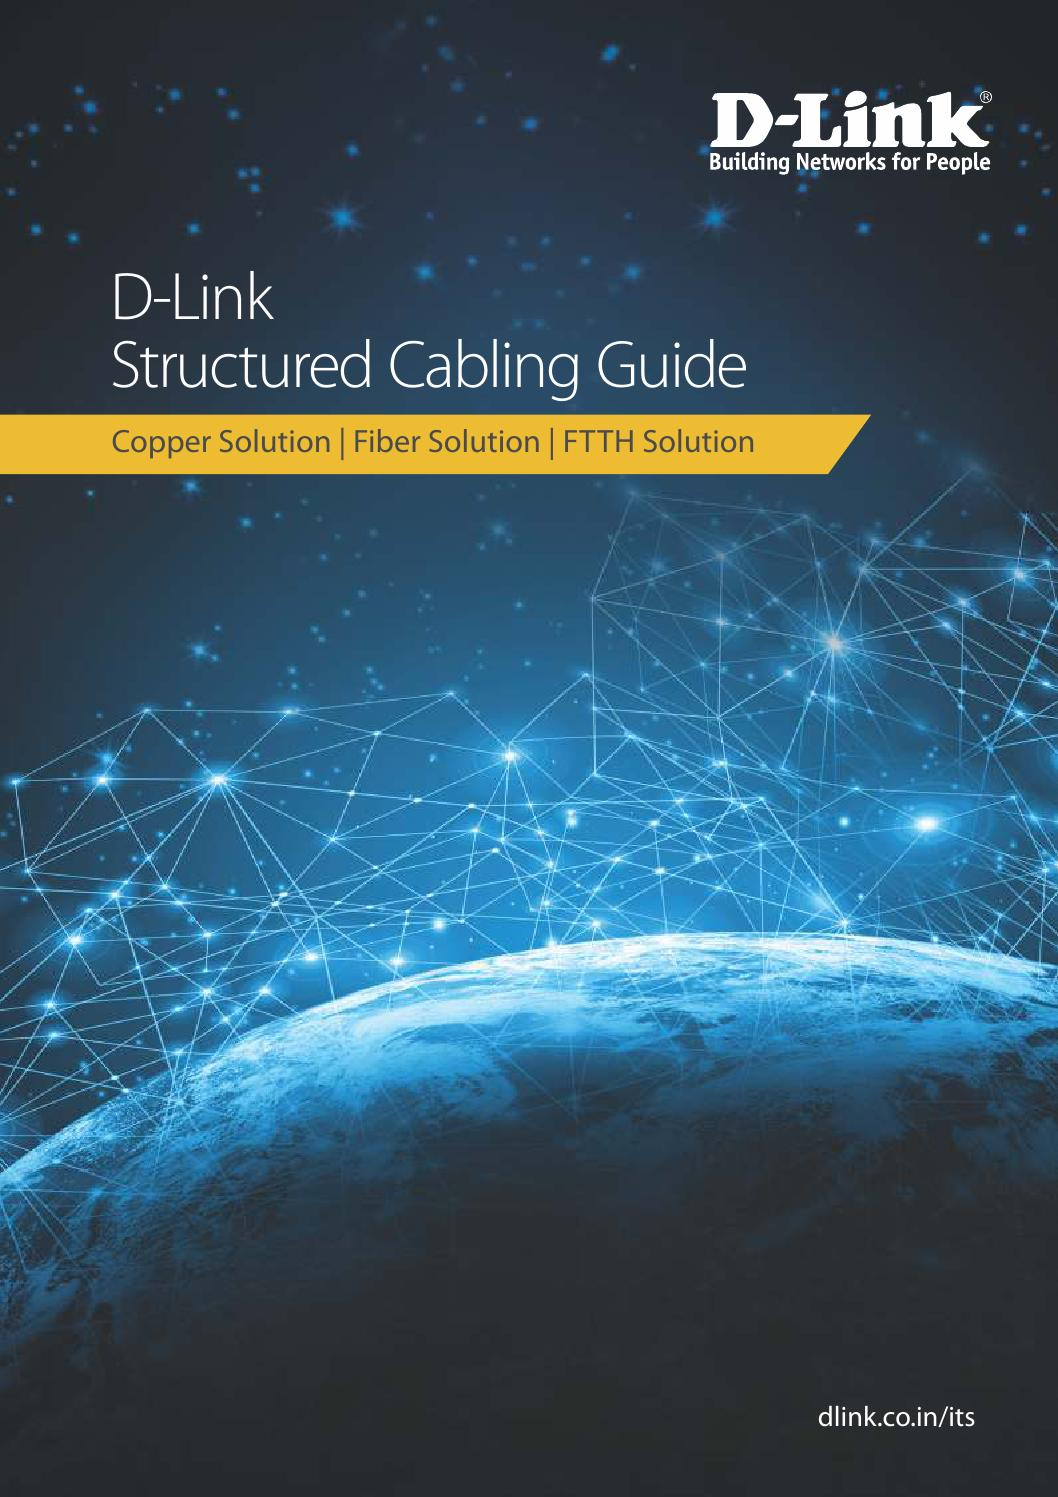 D Link Cabling Guide 2017 By India Limted Issuu 73 Cat6 Patch Panel 110 Type 24 Port 568a B Compatible